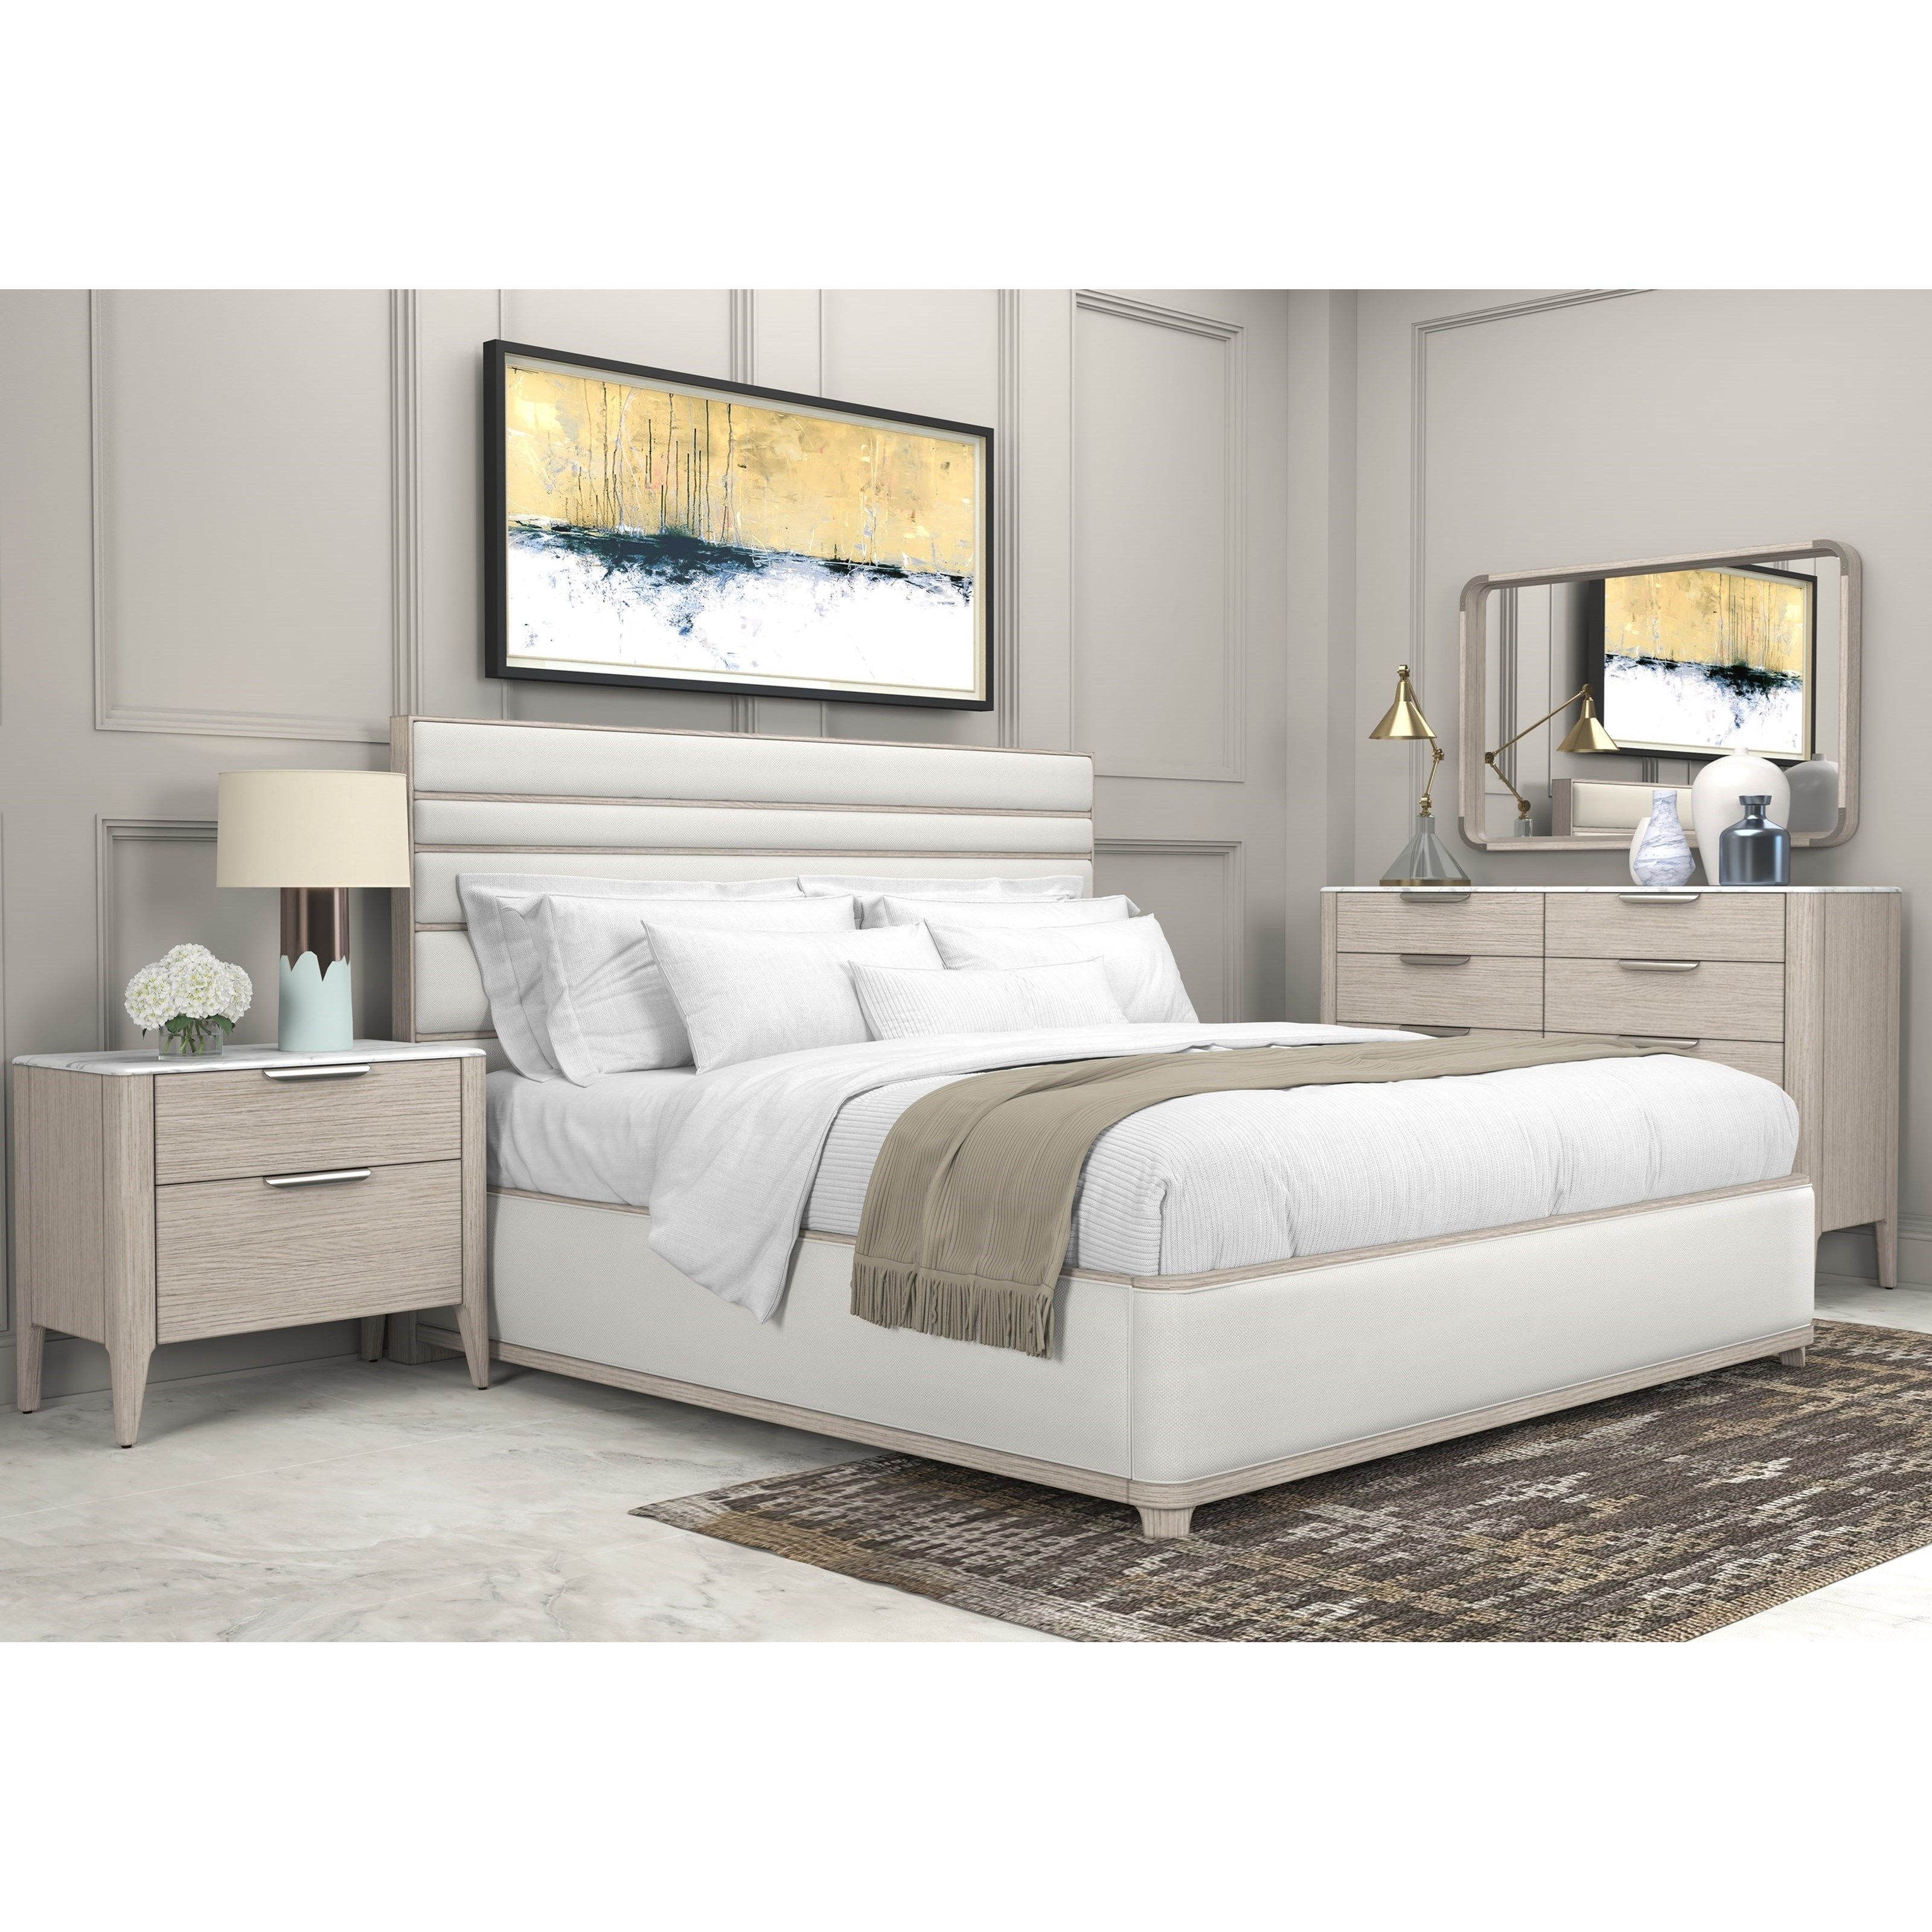 Arris King Bedroom Group by A.R.T. Furniture Inc at Home Collections Furniture